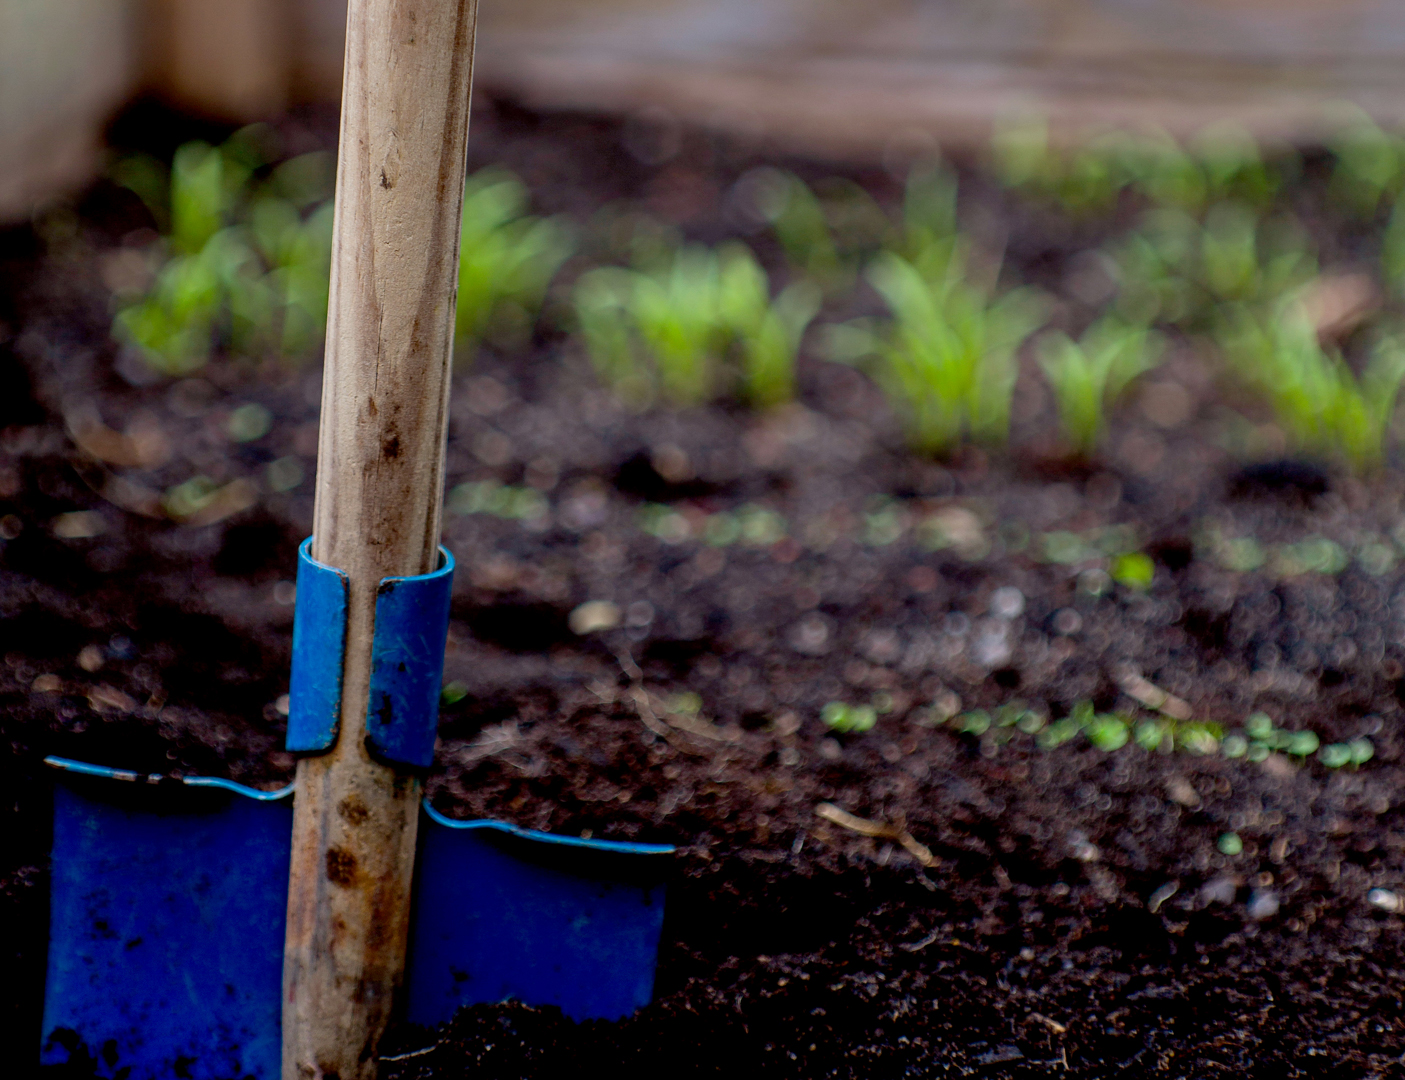 Image: close up of blue spade in garden bed. Photo source: Markus Spiske, Unsplash